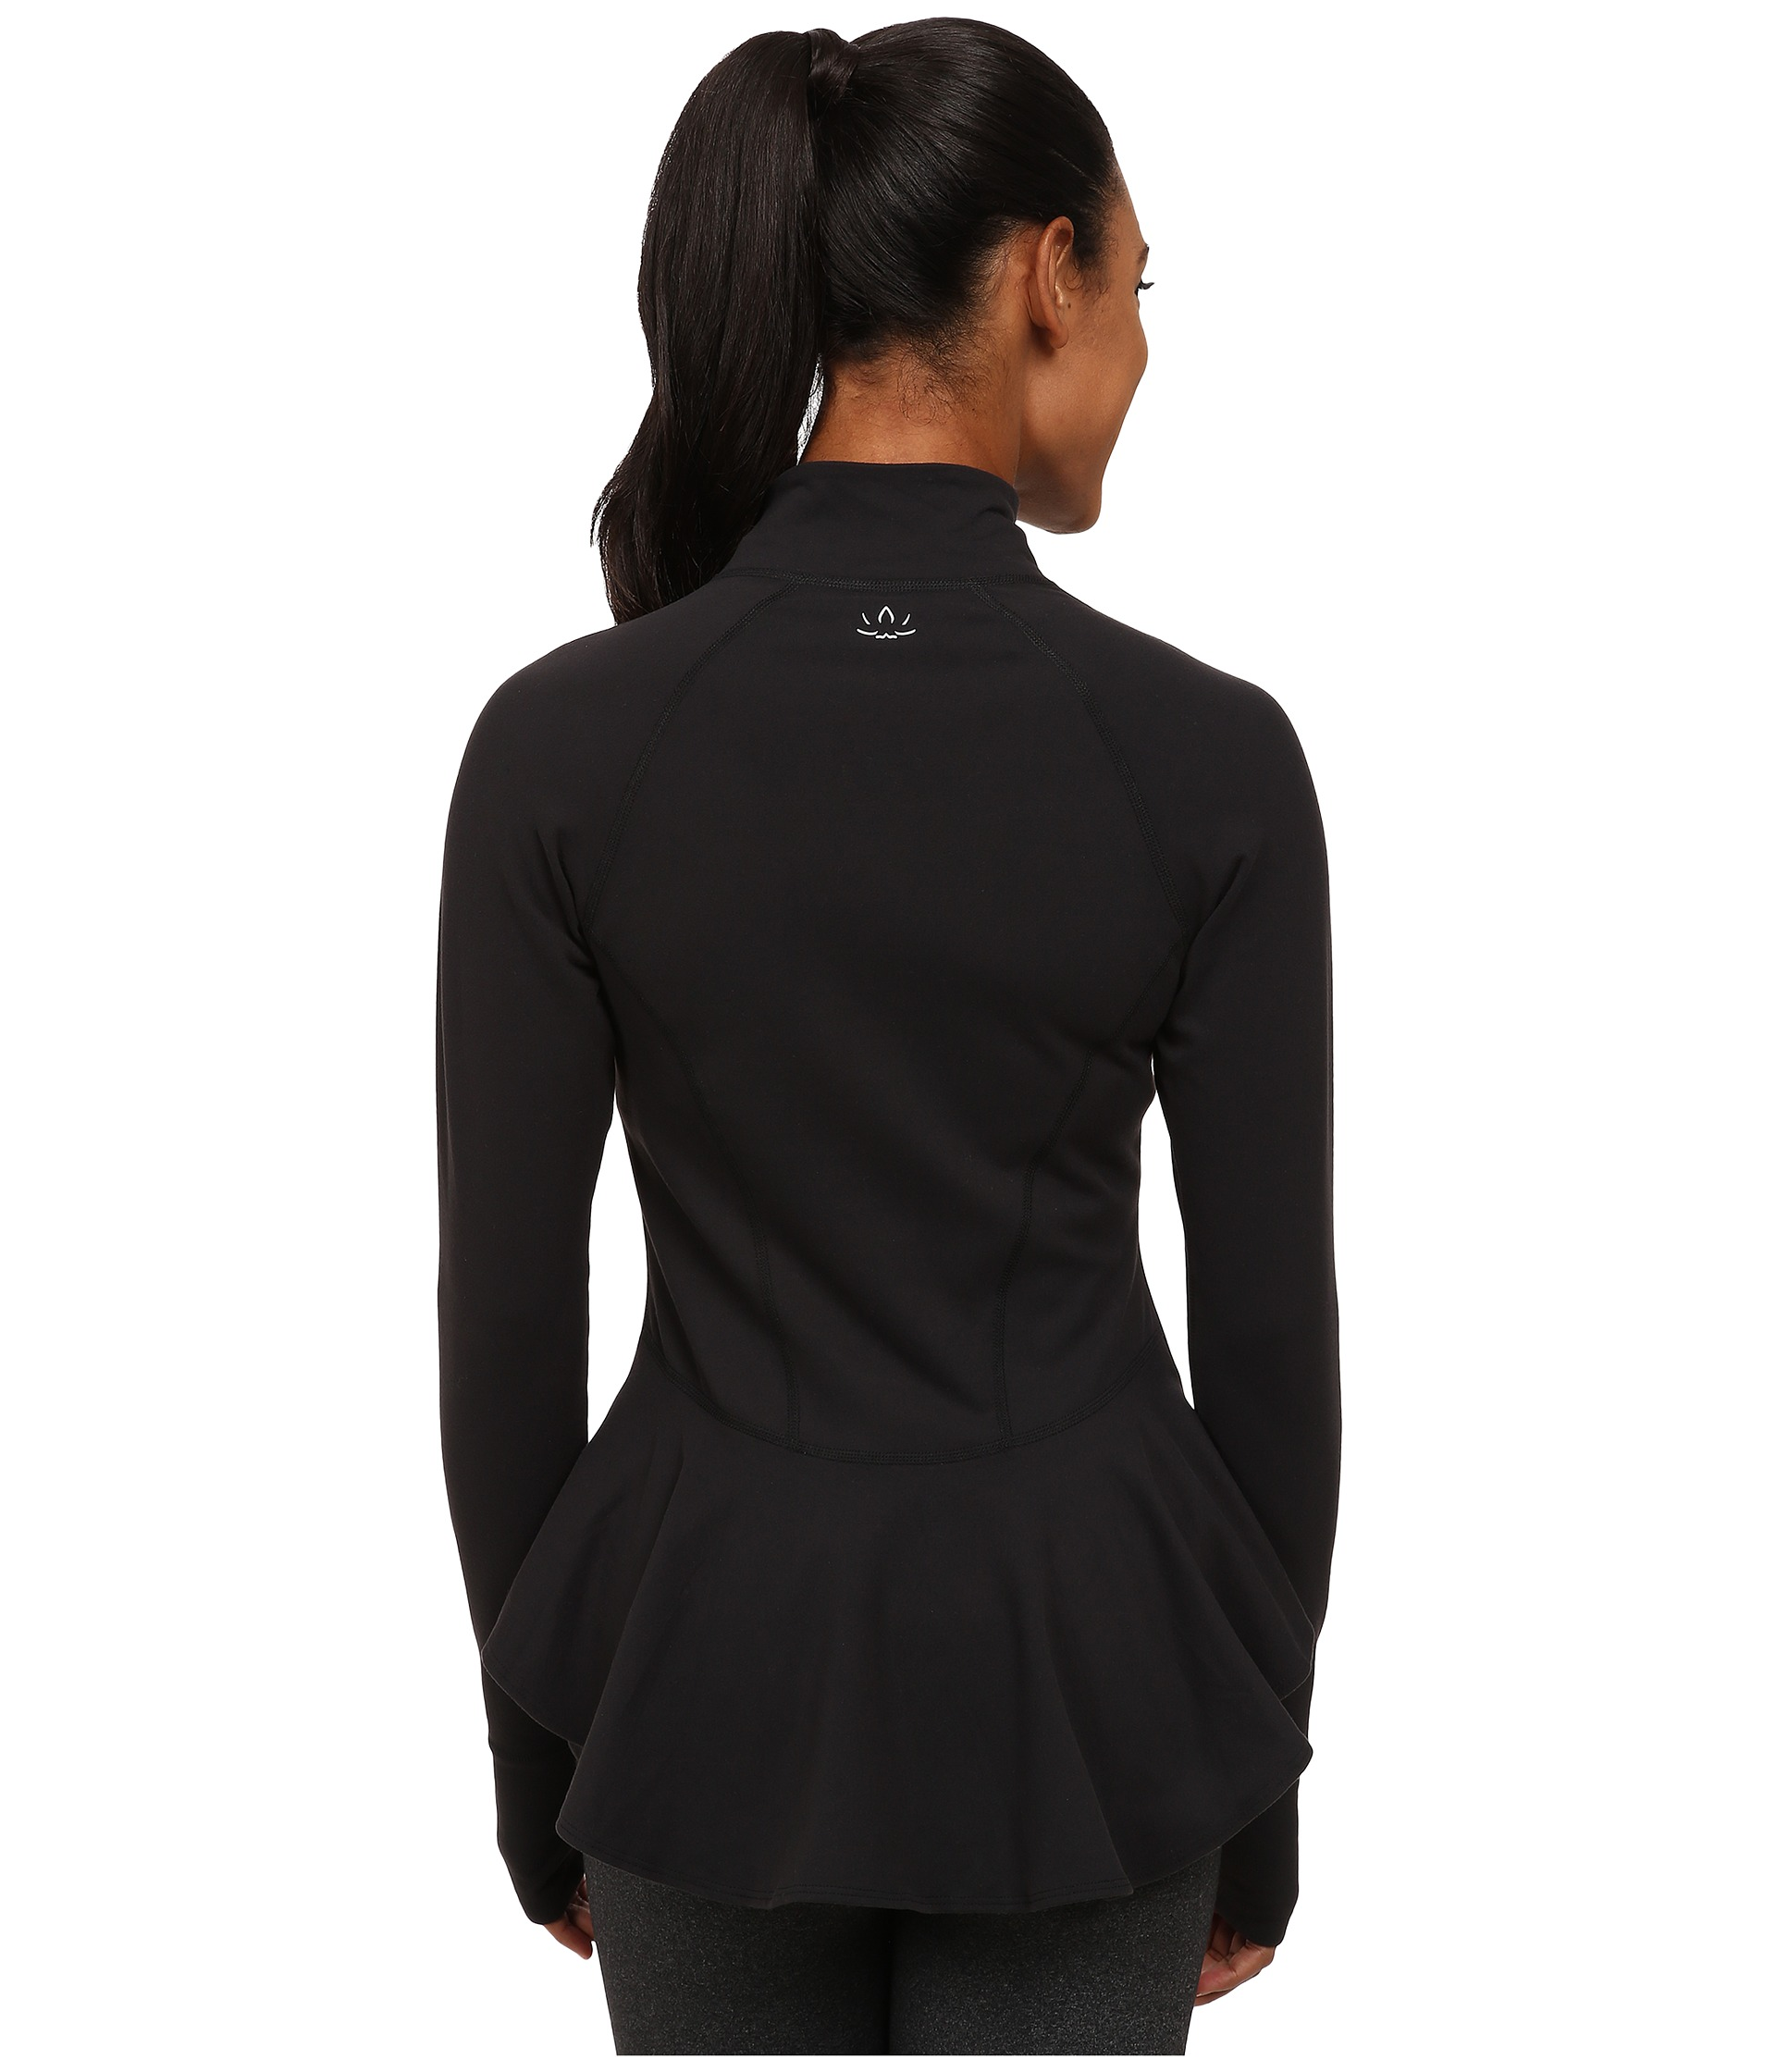 lululemon makes technical athletic clothes for yoga, running, working out, and most other sweaty pursuits. As always, shipping is free. Jackets and coats for any moment and any weather. Shop Women's Jackets + Outerwear. lululemon x Francesca Hayward of The Royal Ballet.